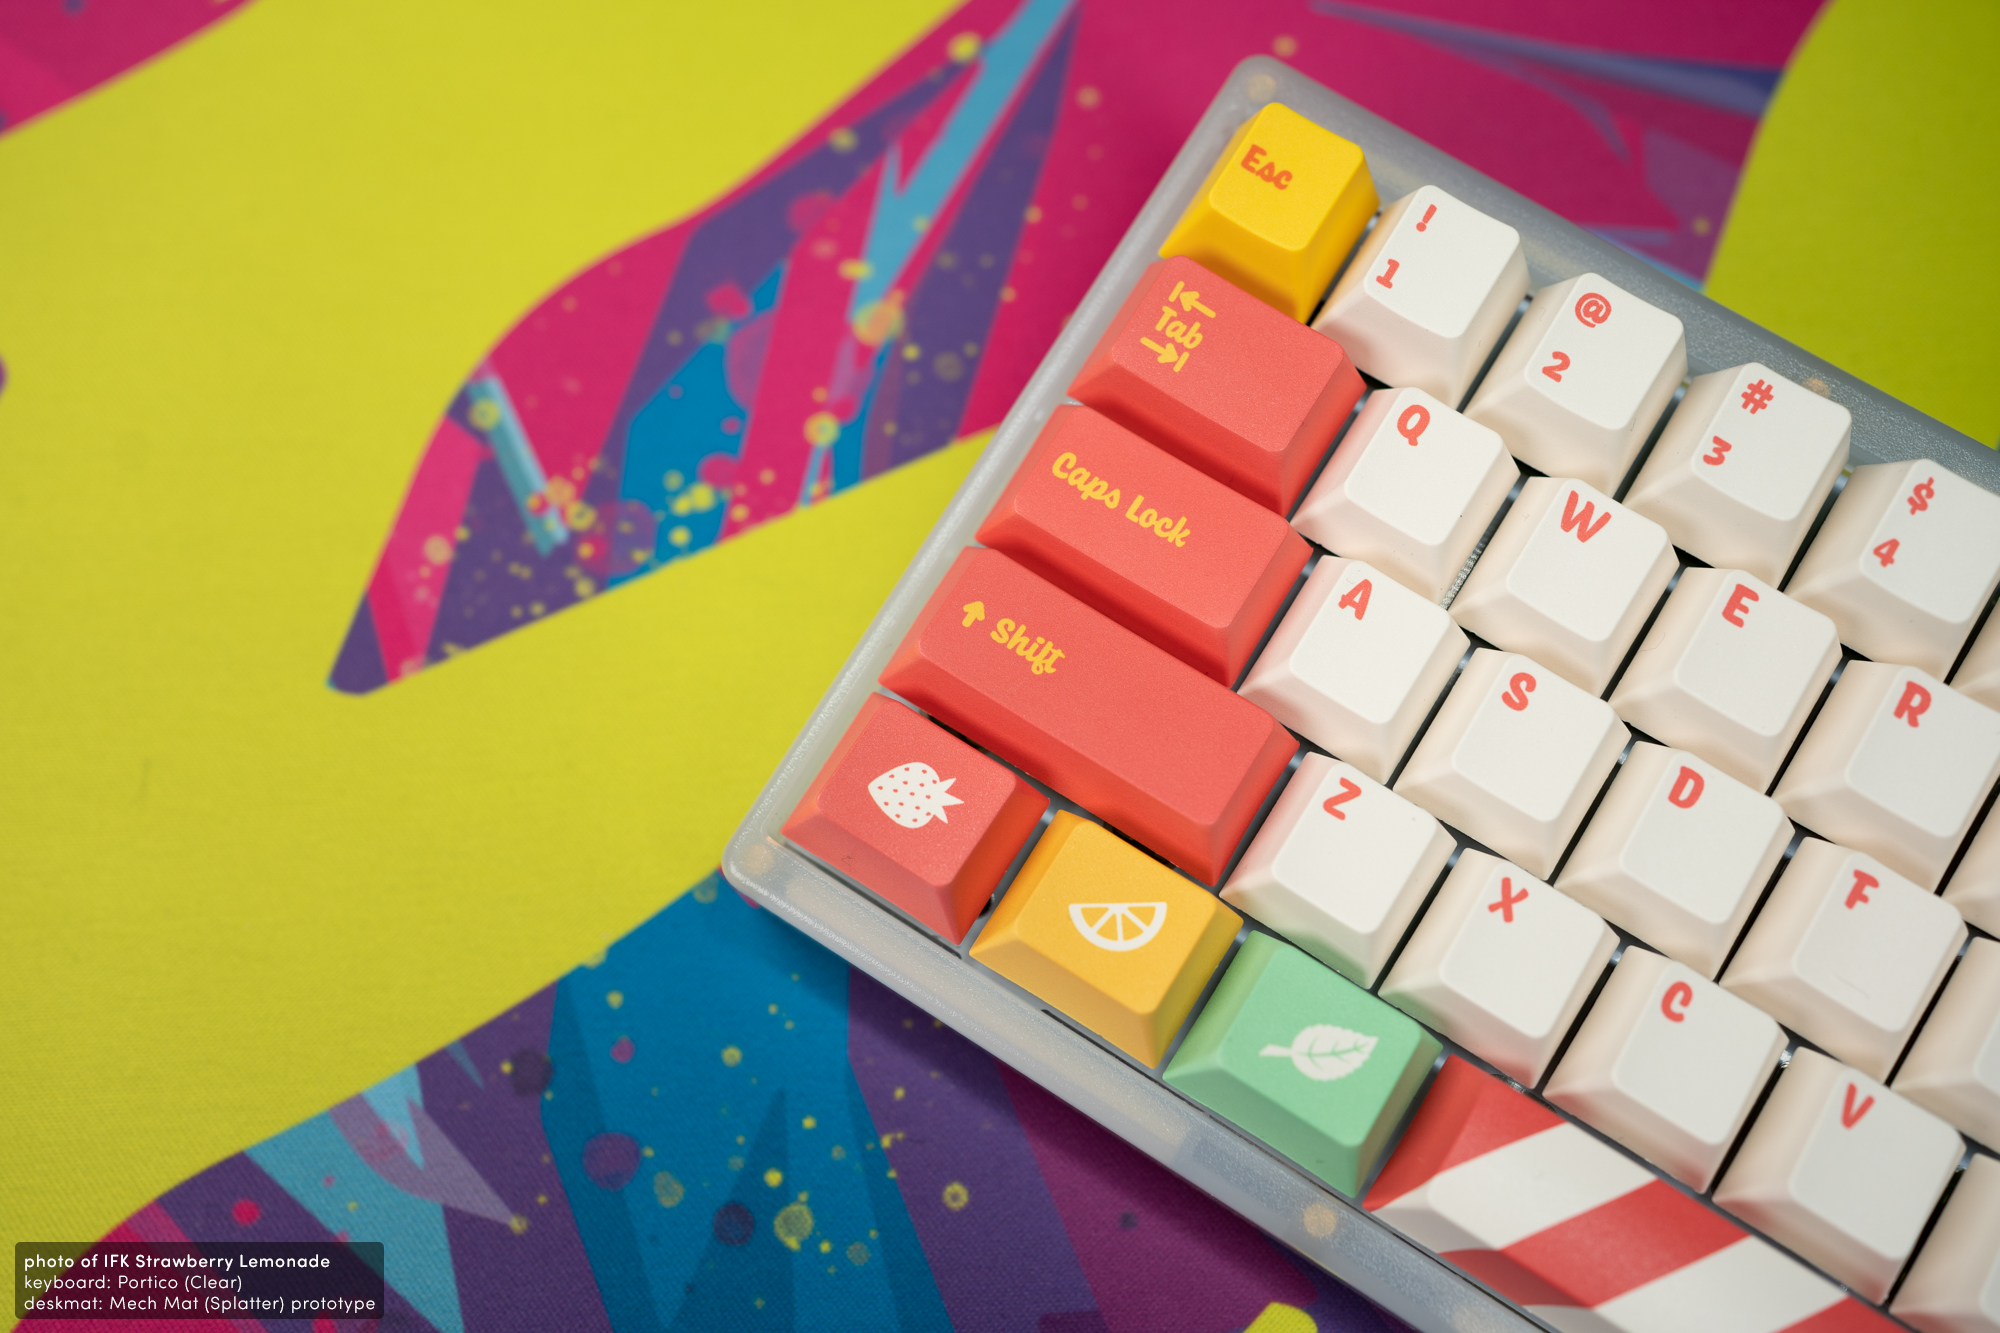 Infinikey Strawberry Lemonade Keycaps